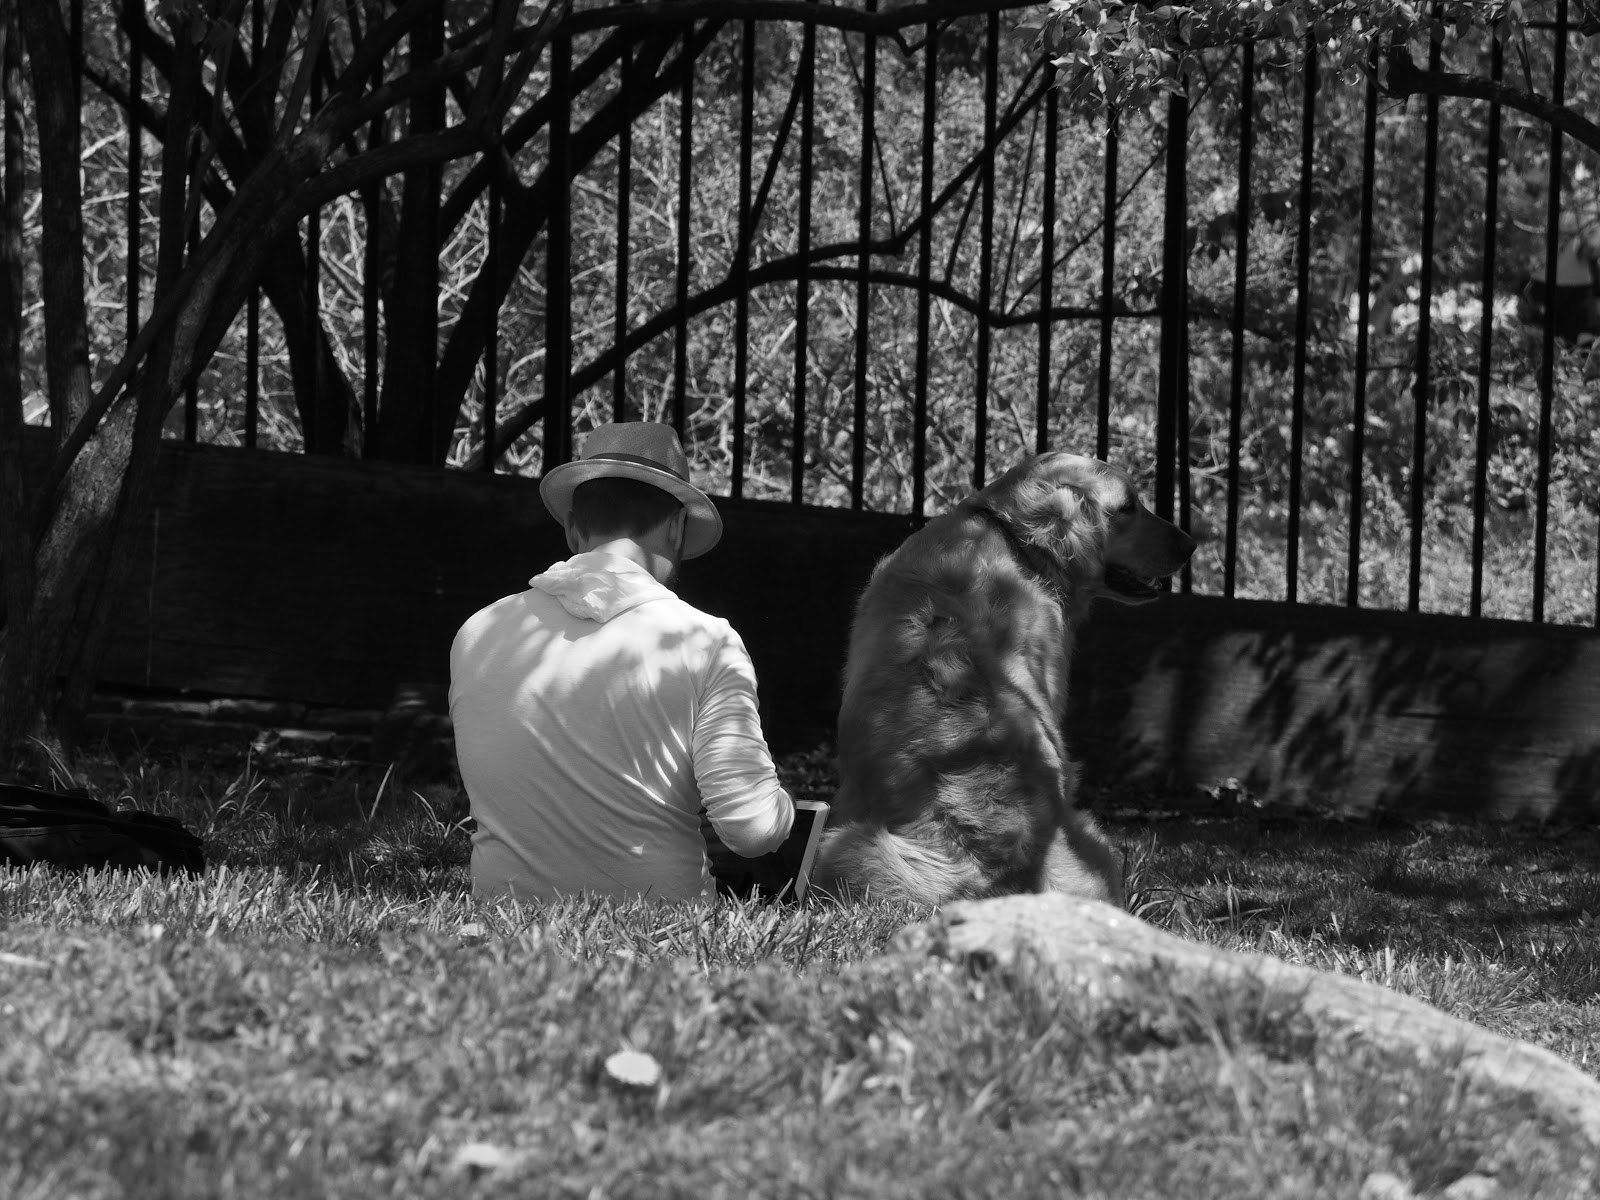 Best Friends #bestfriendsbw #dog  #NYC #CentralPark #mansbestfriend #blackandwhite #frombehind 2014